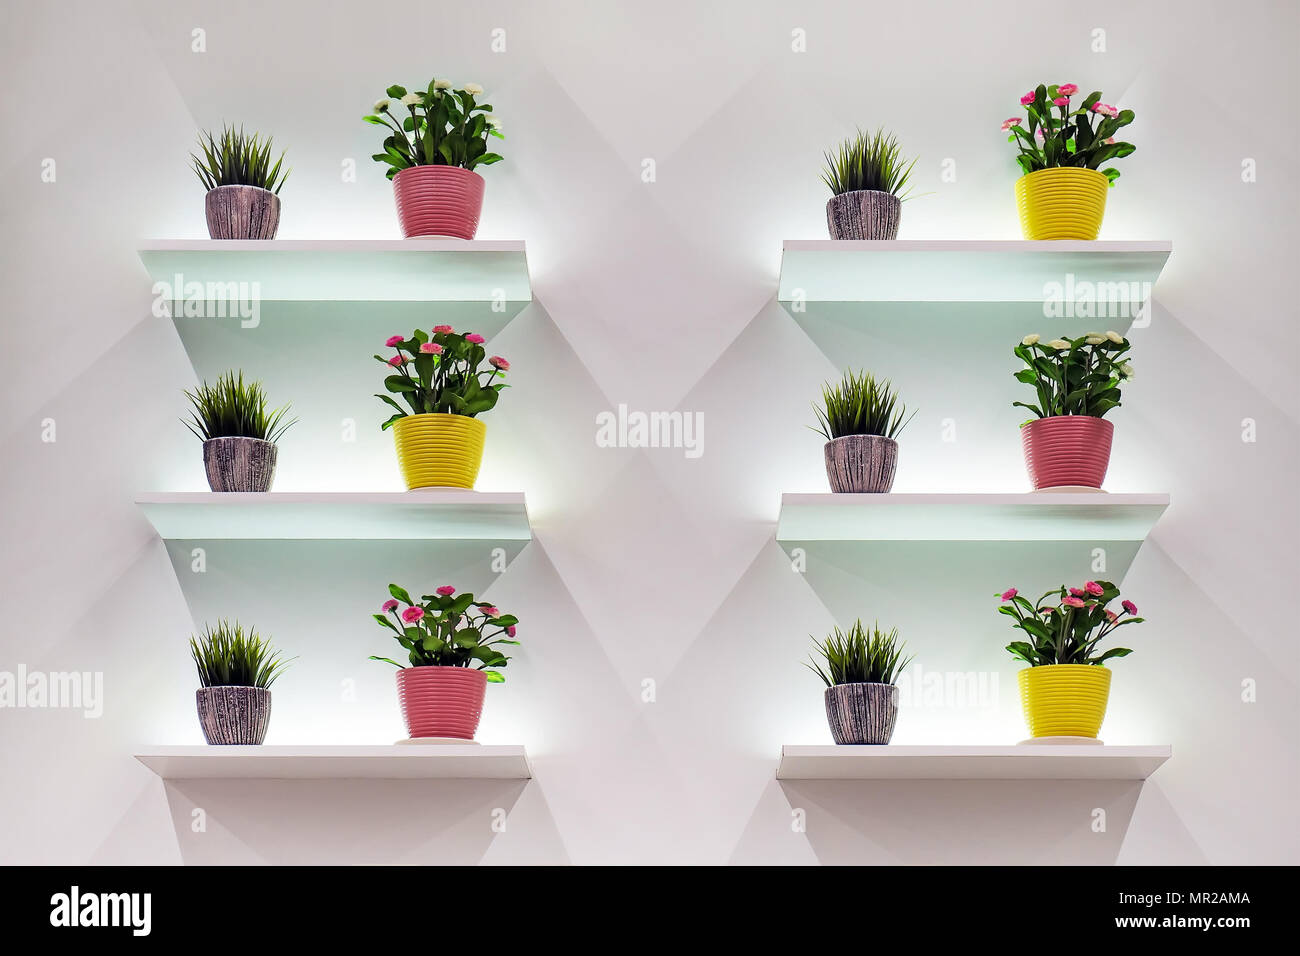 position of flowers on white wall background various flowers in a small pot shelves white with backlight MR2AMA